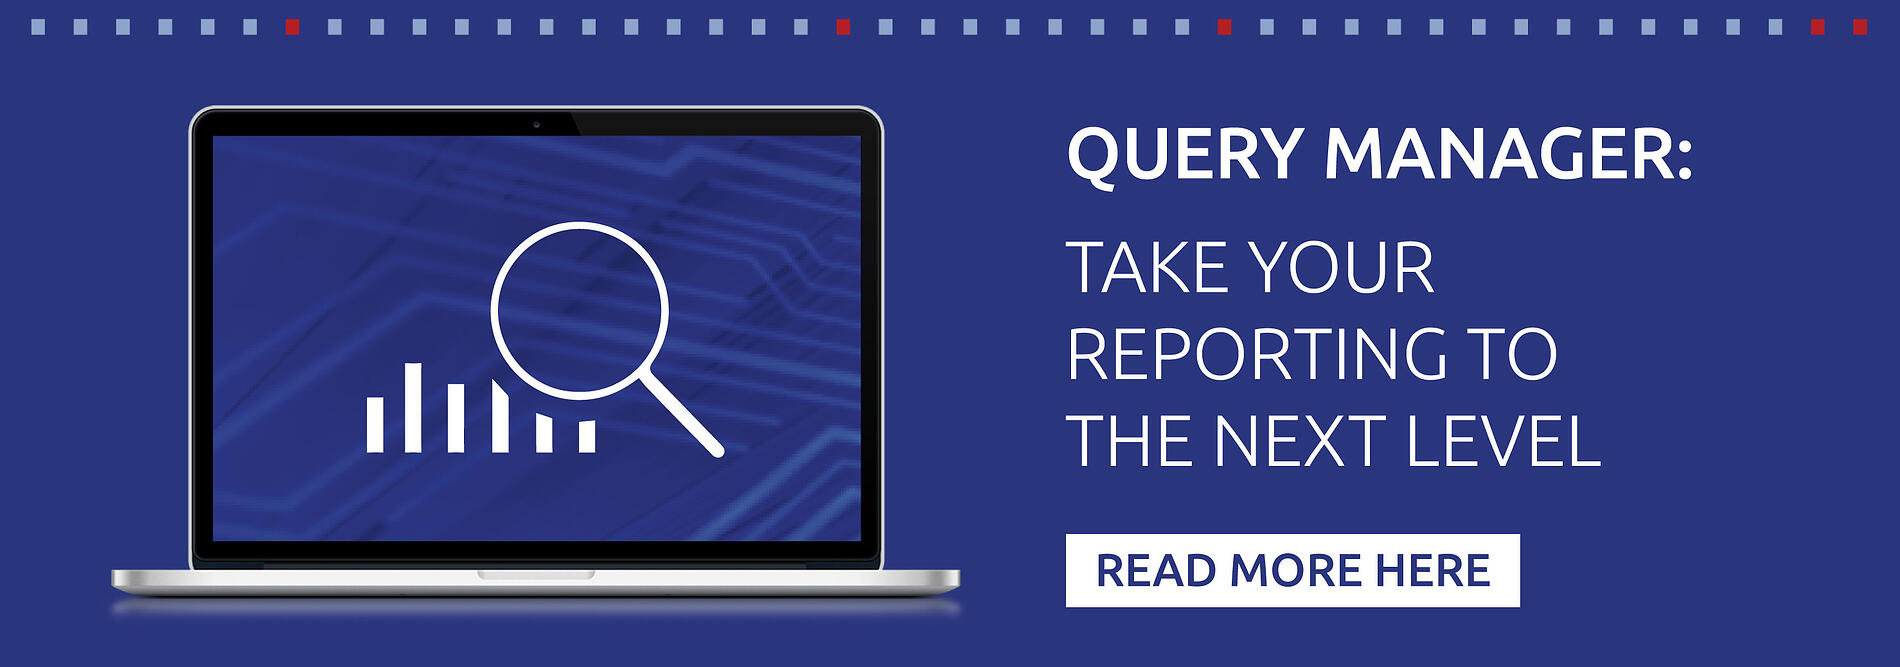 Query Manager: Taking your Reporting to the next level